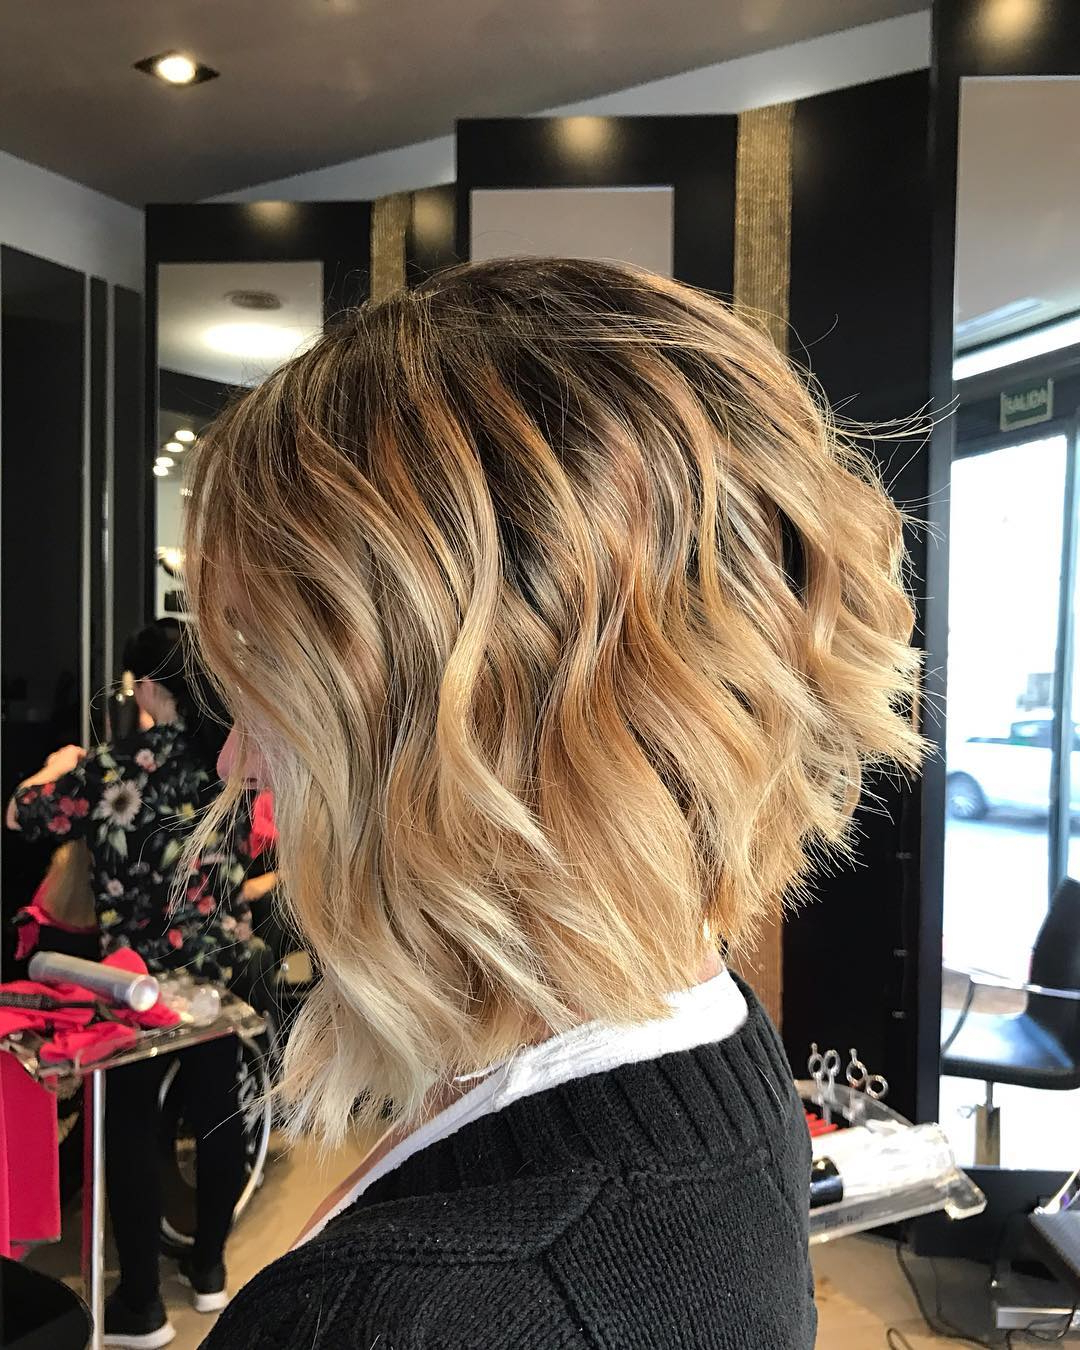 10 Layered Bob Hairstyles – Look Fab In New Blonde Shades! – Popular Inside White Blonde Curly Layered Bob Hairstyles (View 11 of 20)